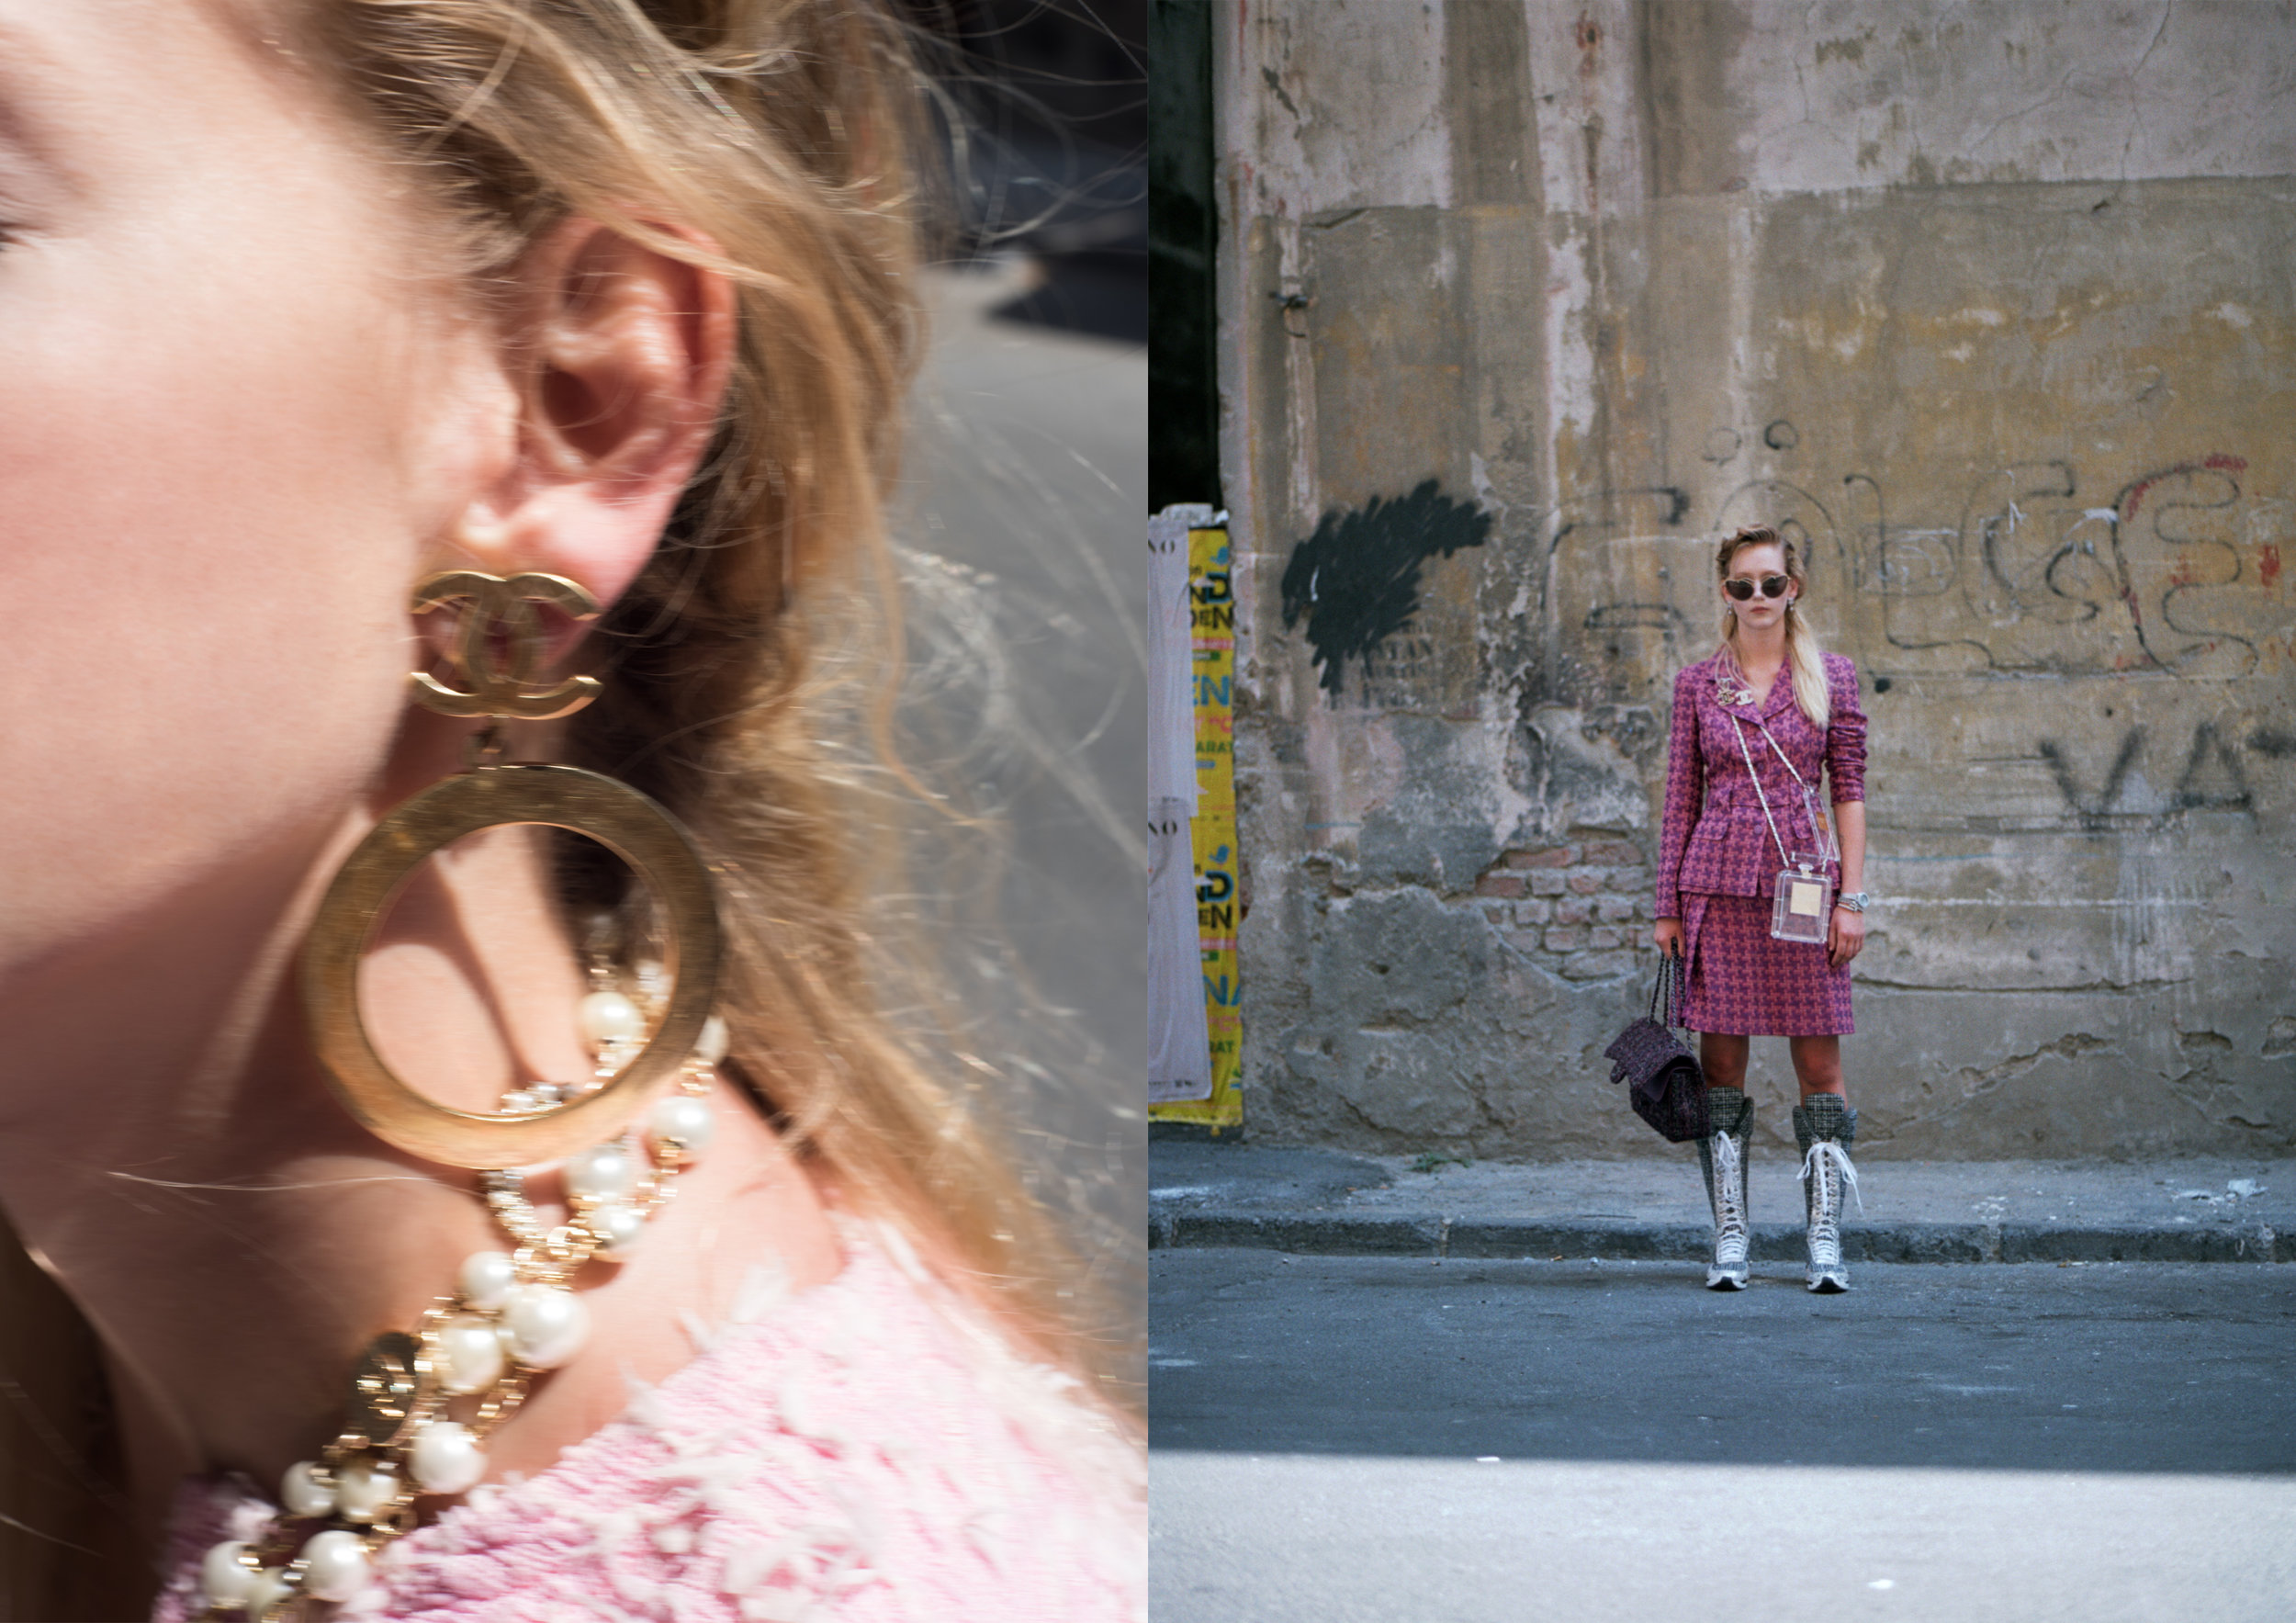 left image ALL CHANEL, right image suit CHANEL, bags CHANEL,sunglasses MIU MIU, prooch + bracelets CHANEL, shoes CHANEL